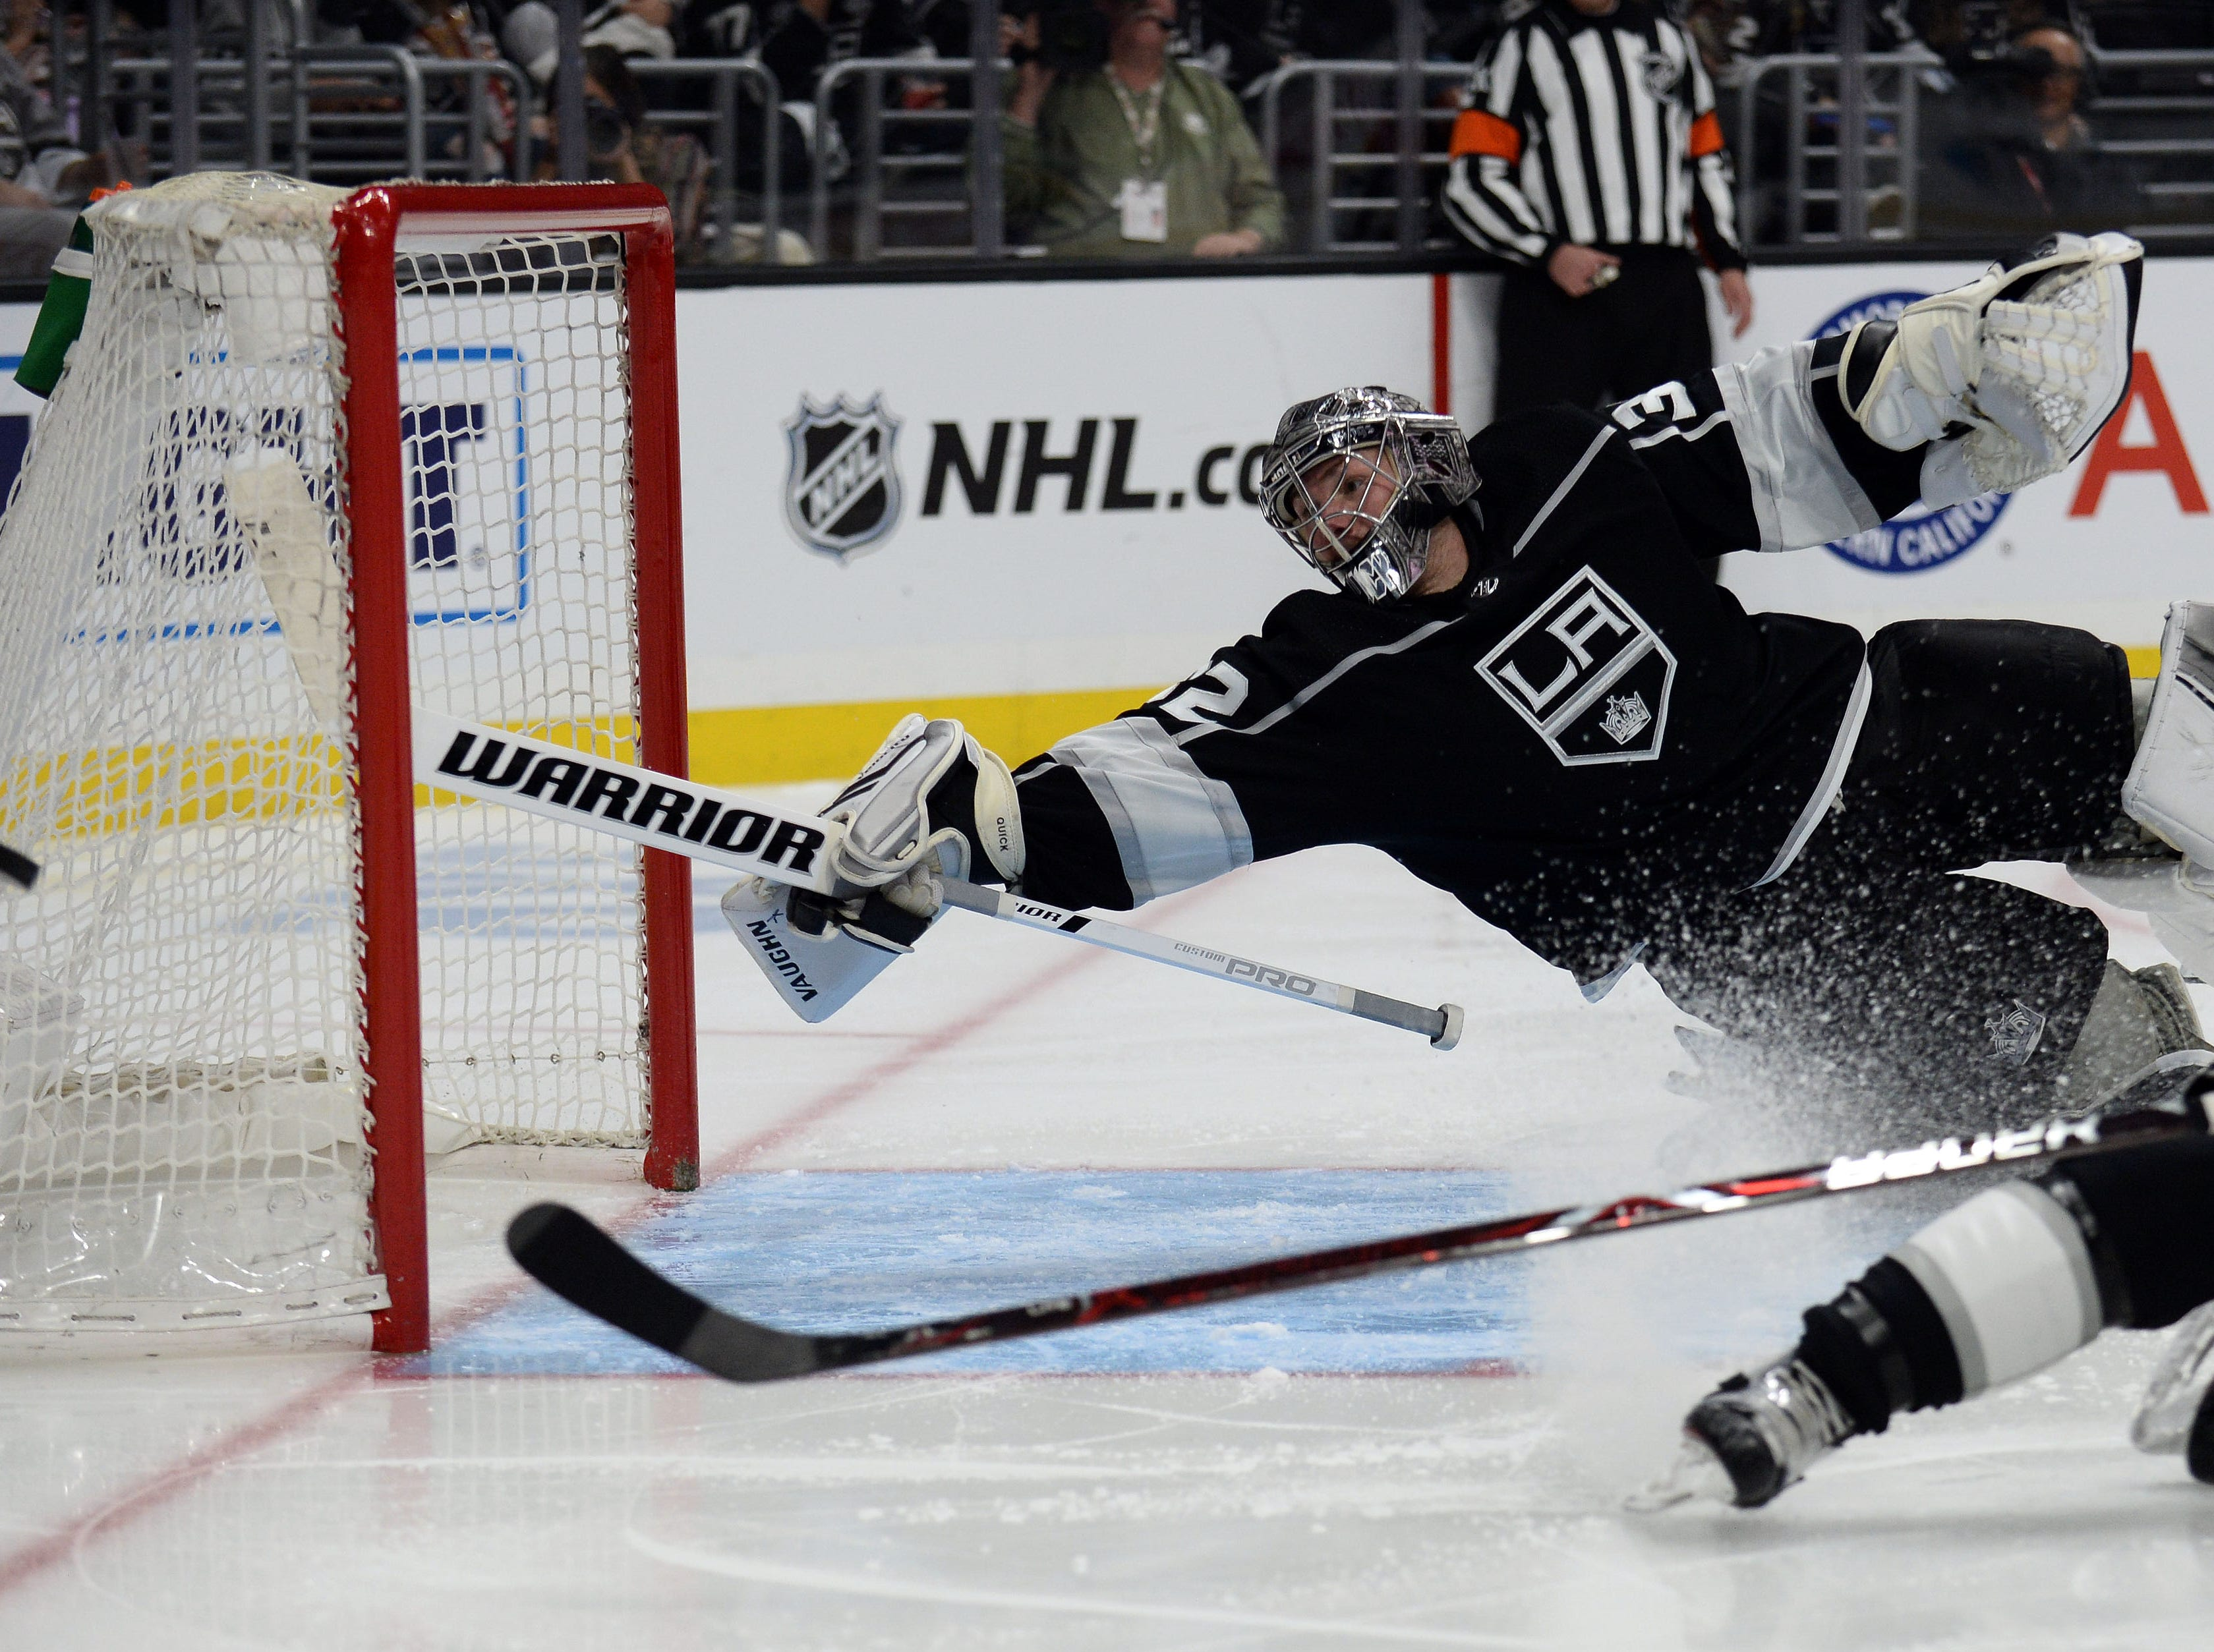 Jan. 21: Los Angeles Kings goaltender Jonathan Quick defends the goal against the St. Louis Blues as the puck goes wide of the net during the third period at Staples Center.